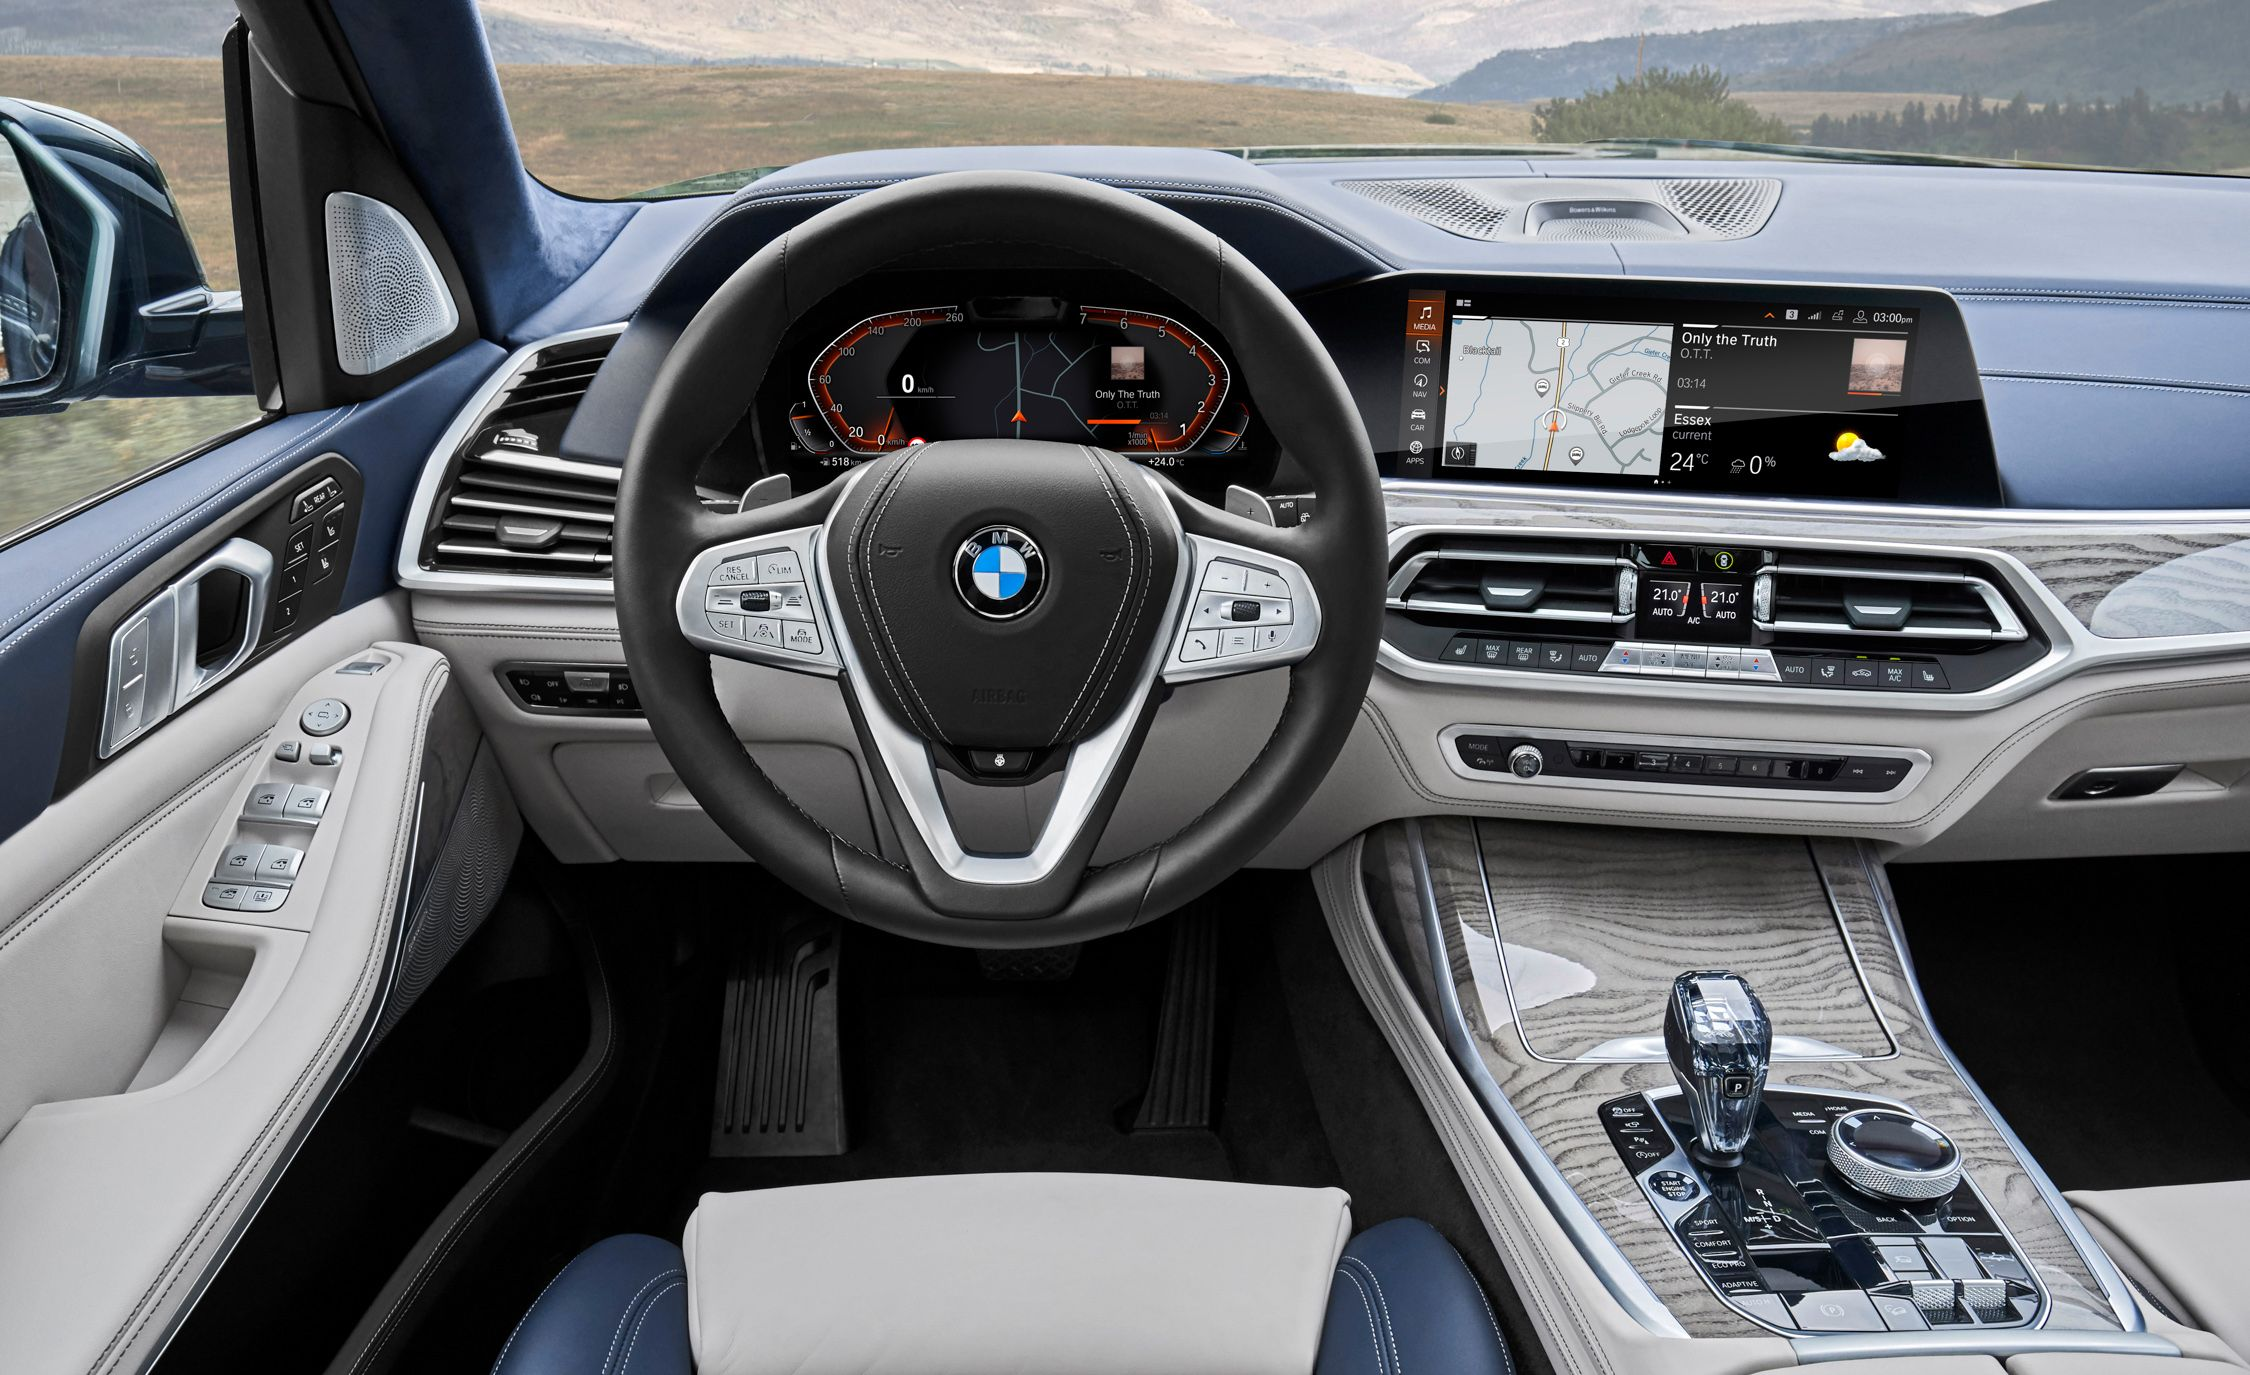 2019 bmw x7 reviews | bmw x7 price, photos, and specs | car and driver